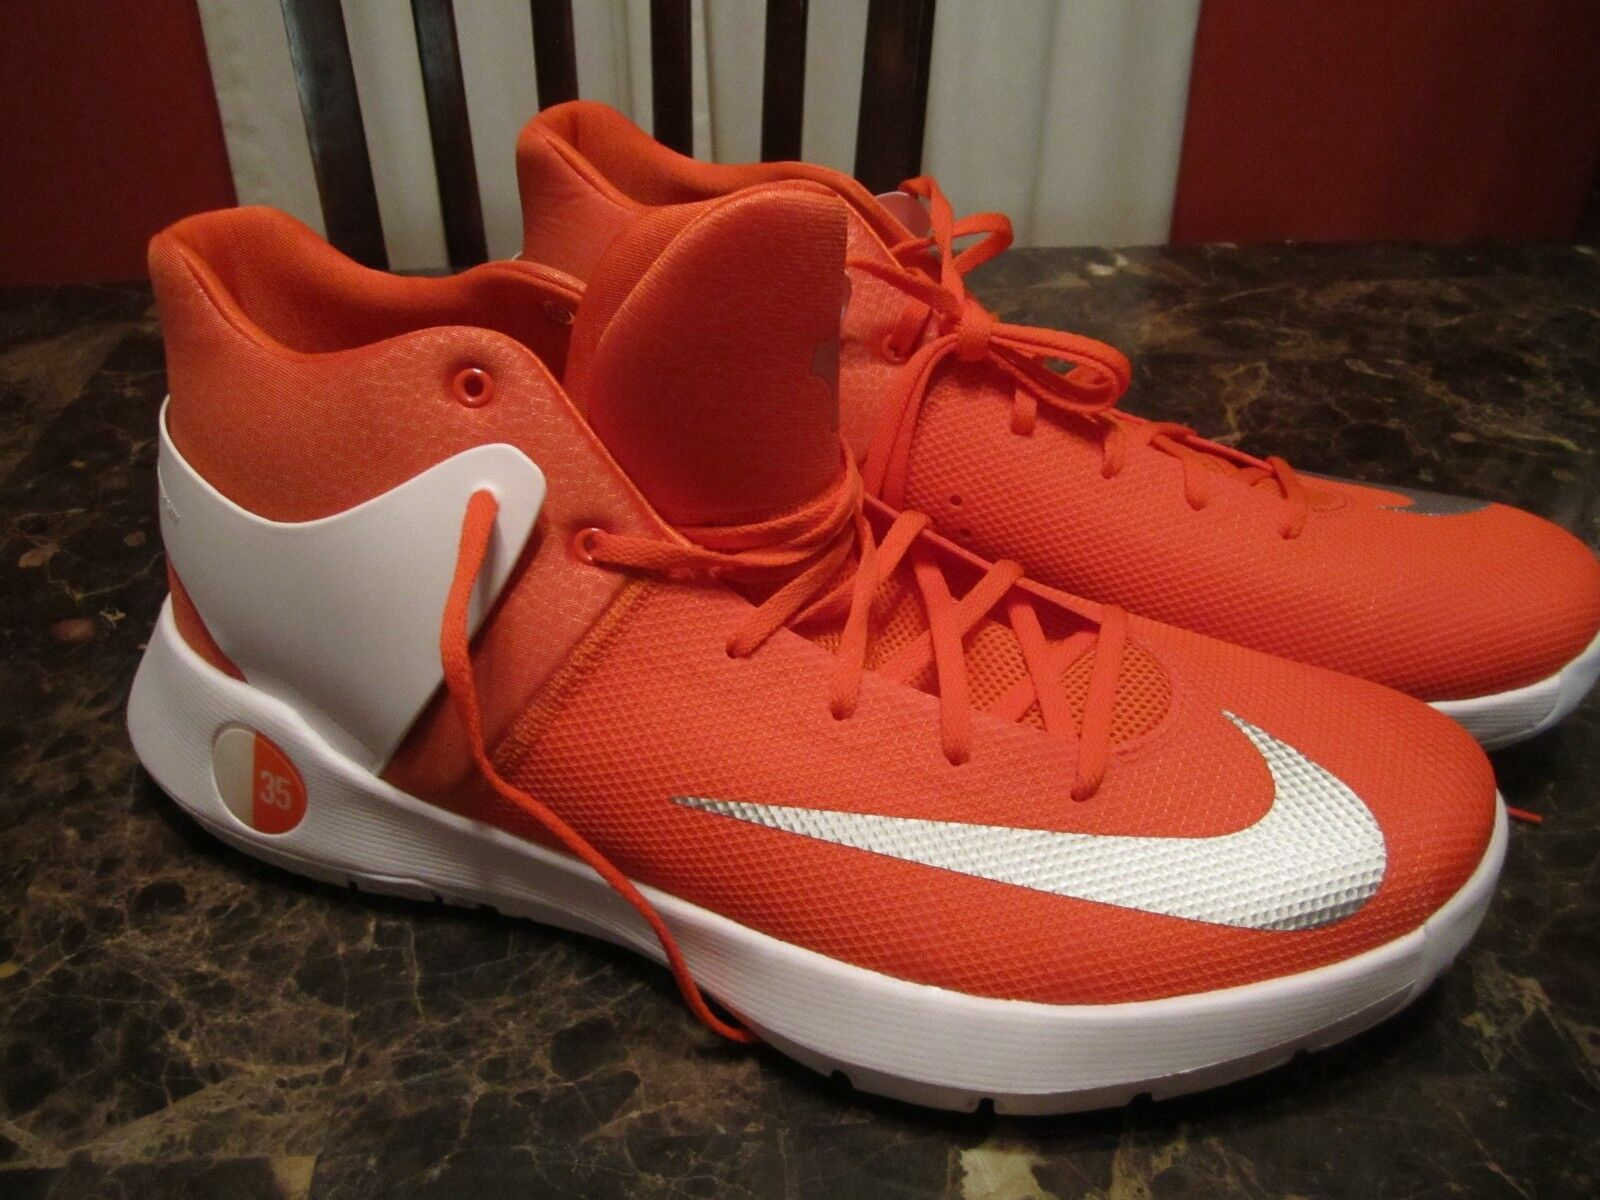 New Nike Kevin Durant KD Trey 5 IV Basketball Shoes 856484-661 Men's Comfortable Cheap women's shoes women's shoes